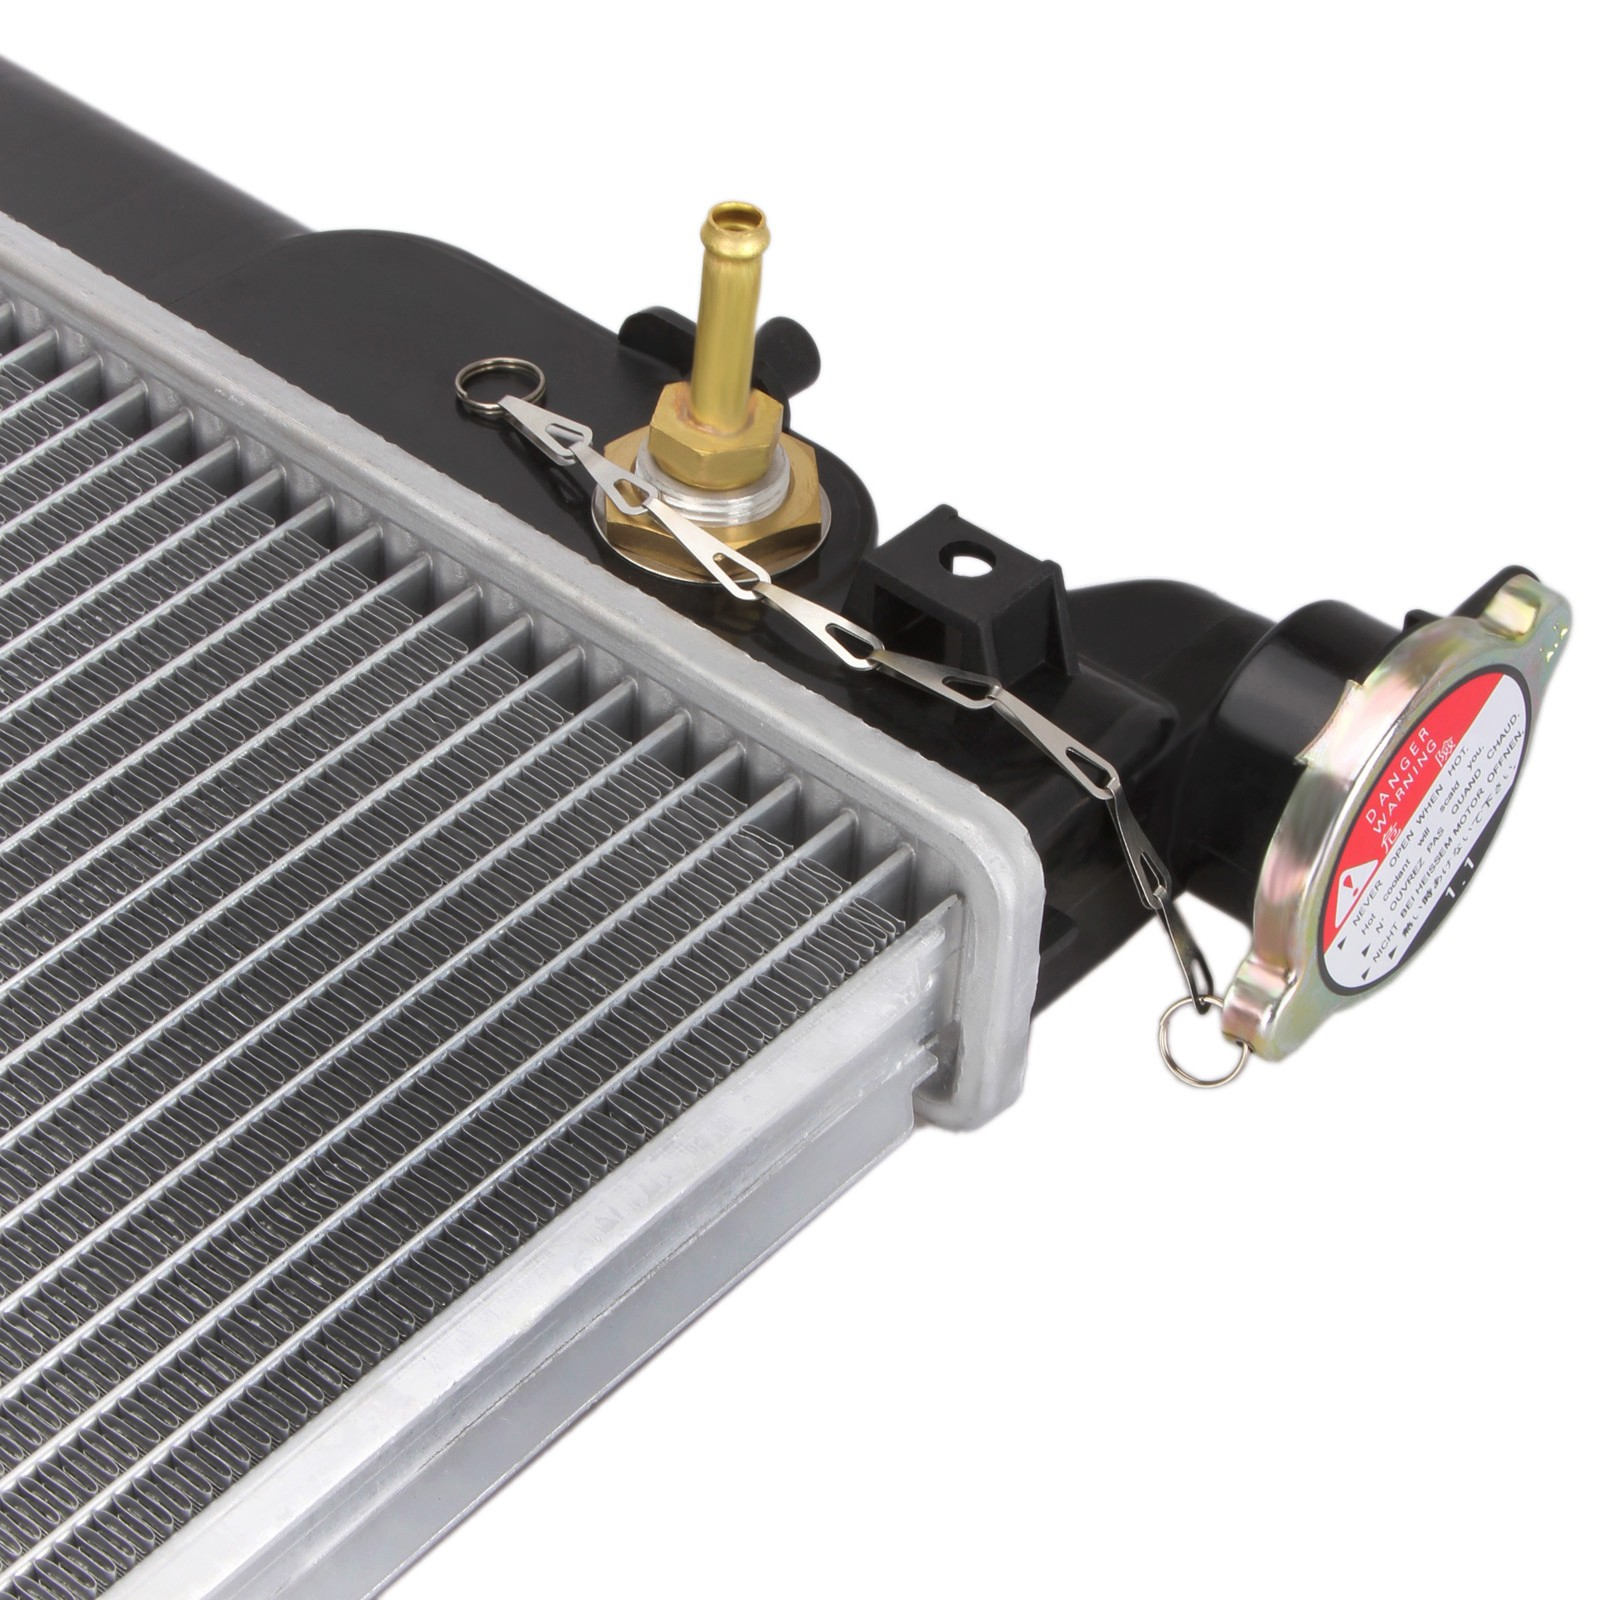 Dromedary-Car Premium Radiator For Holden Commodore Vn Vg Vp Vr Vs Series V6 Engine-5